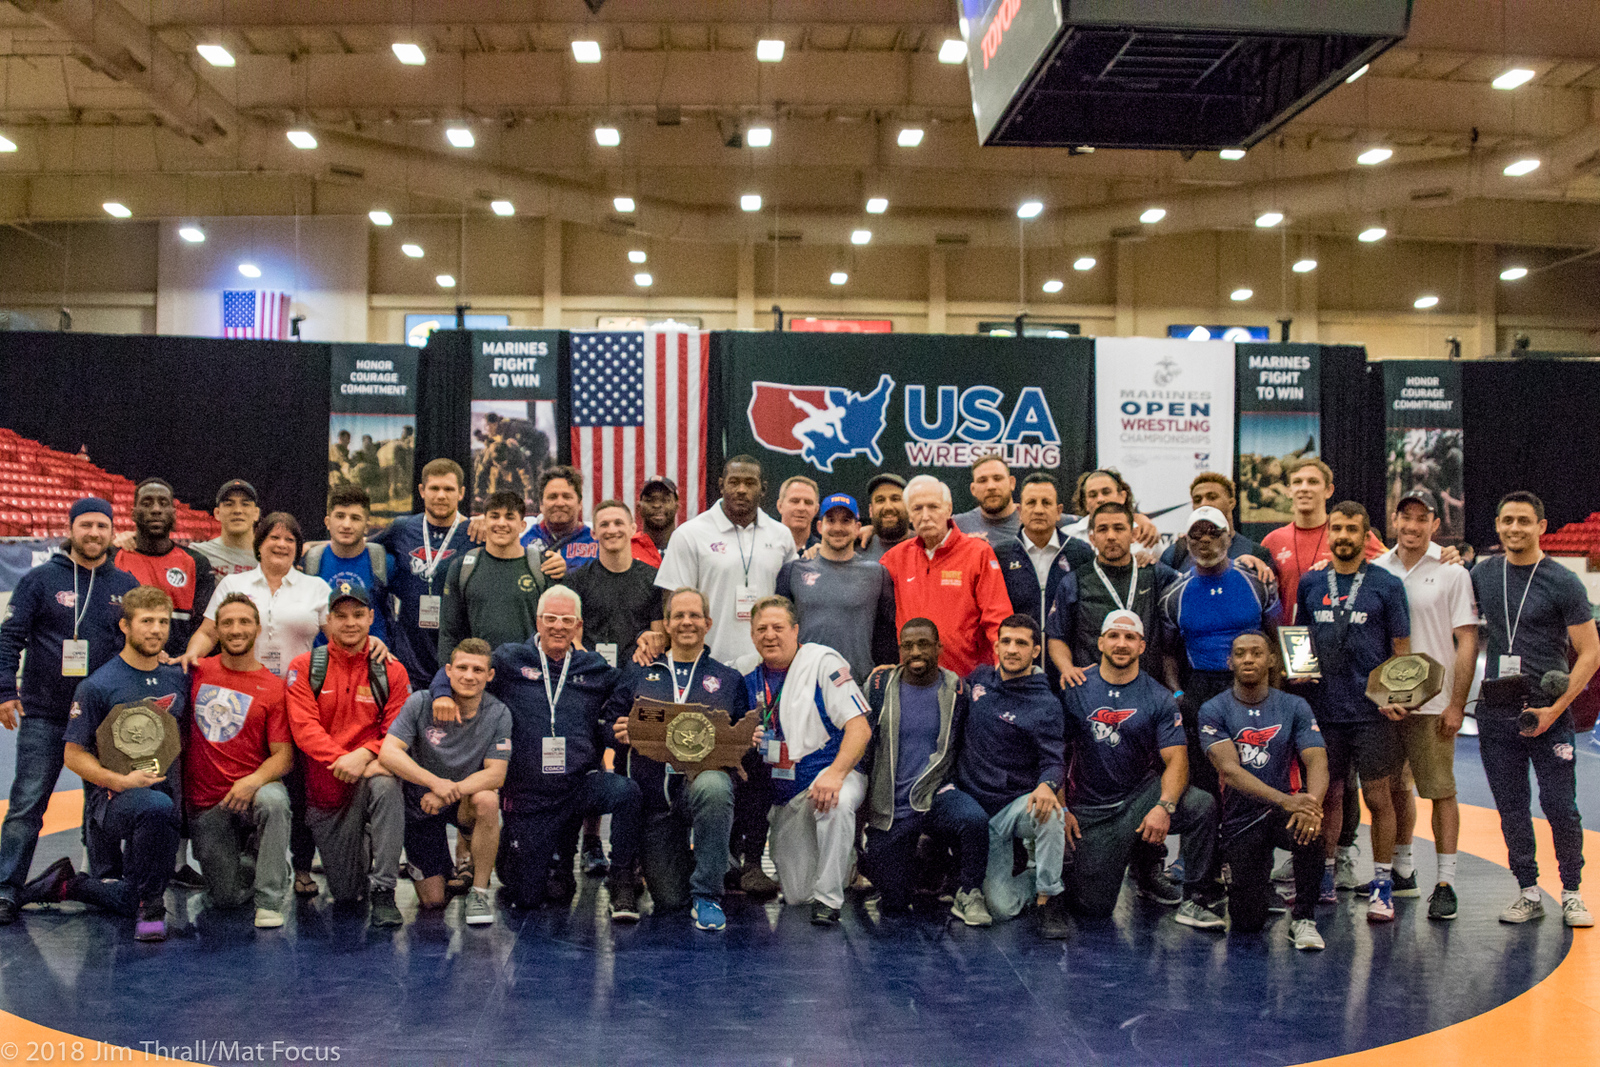 TMWC MEN'S FREESTYLE ARE CROWNED U.S. OPEN CHAMPIONS FOR THE 5TH YEAR IN A ROW